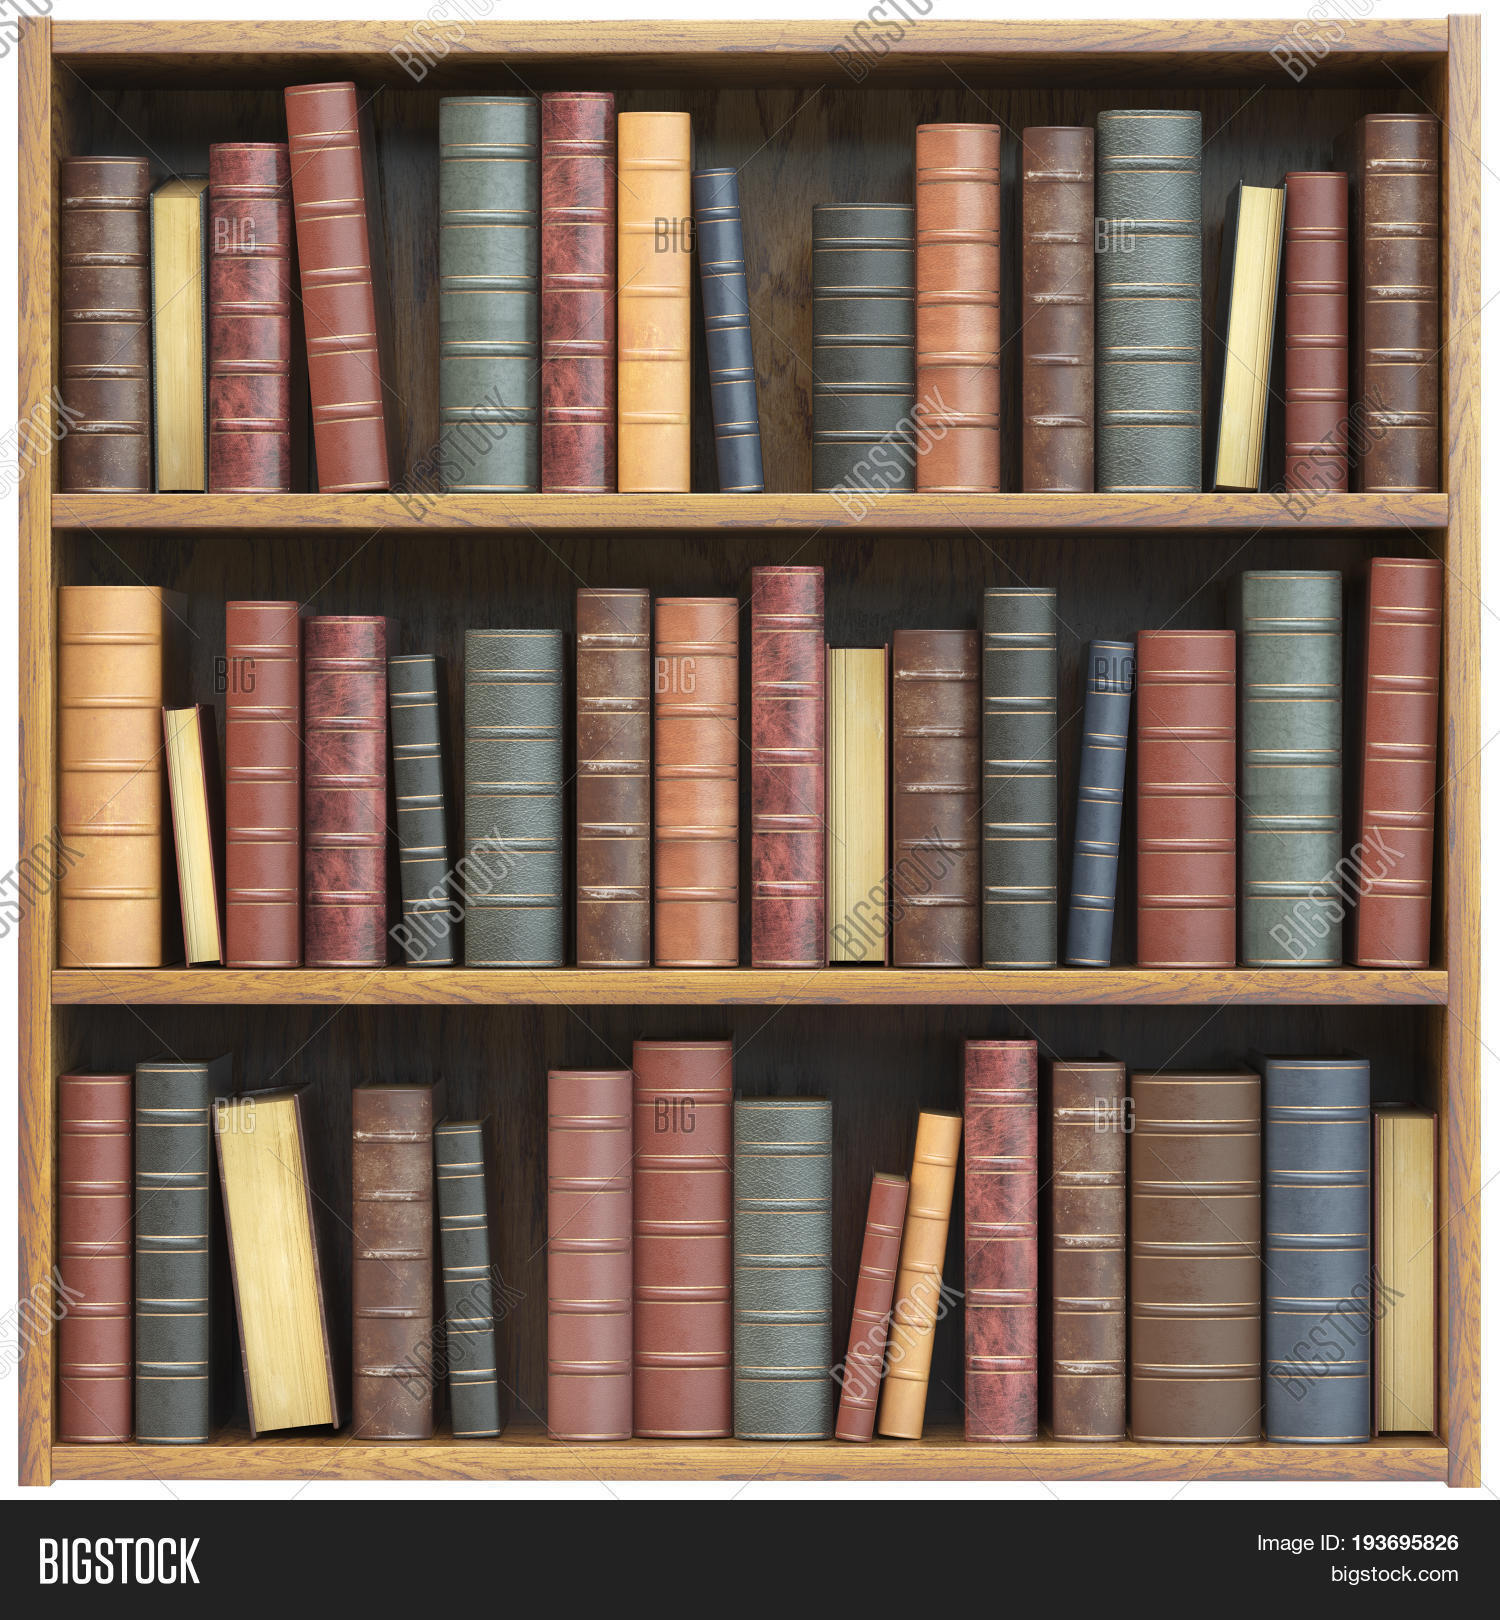 Bookshelf with old books isolated on white